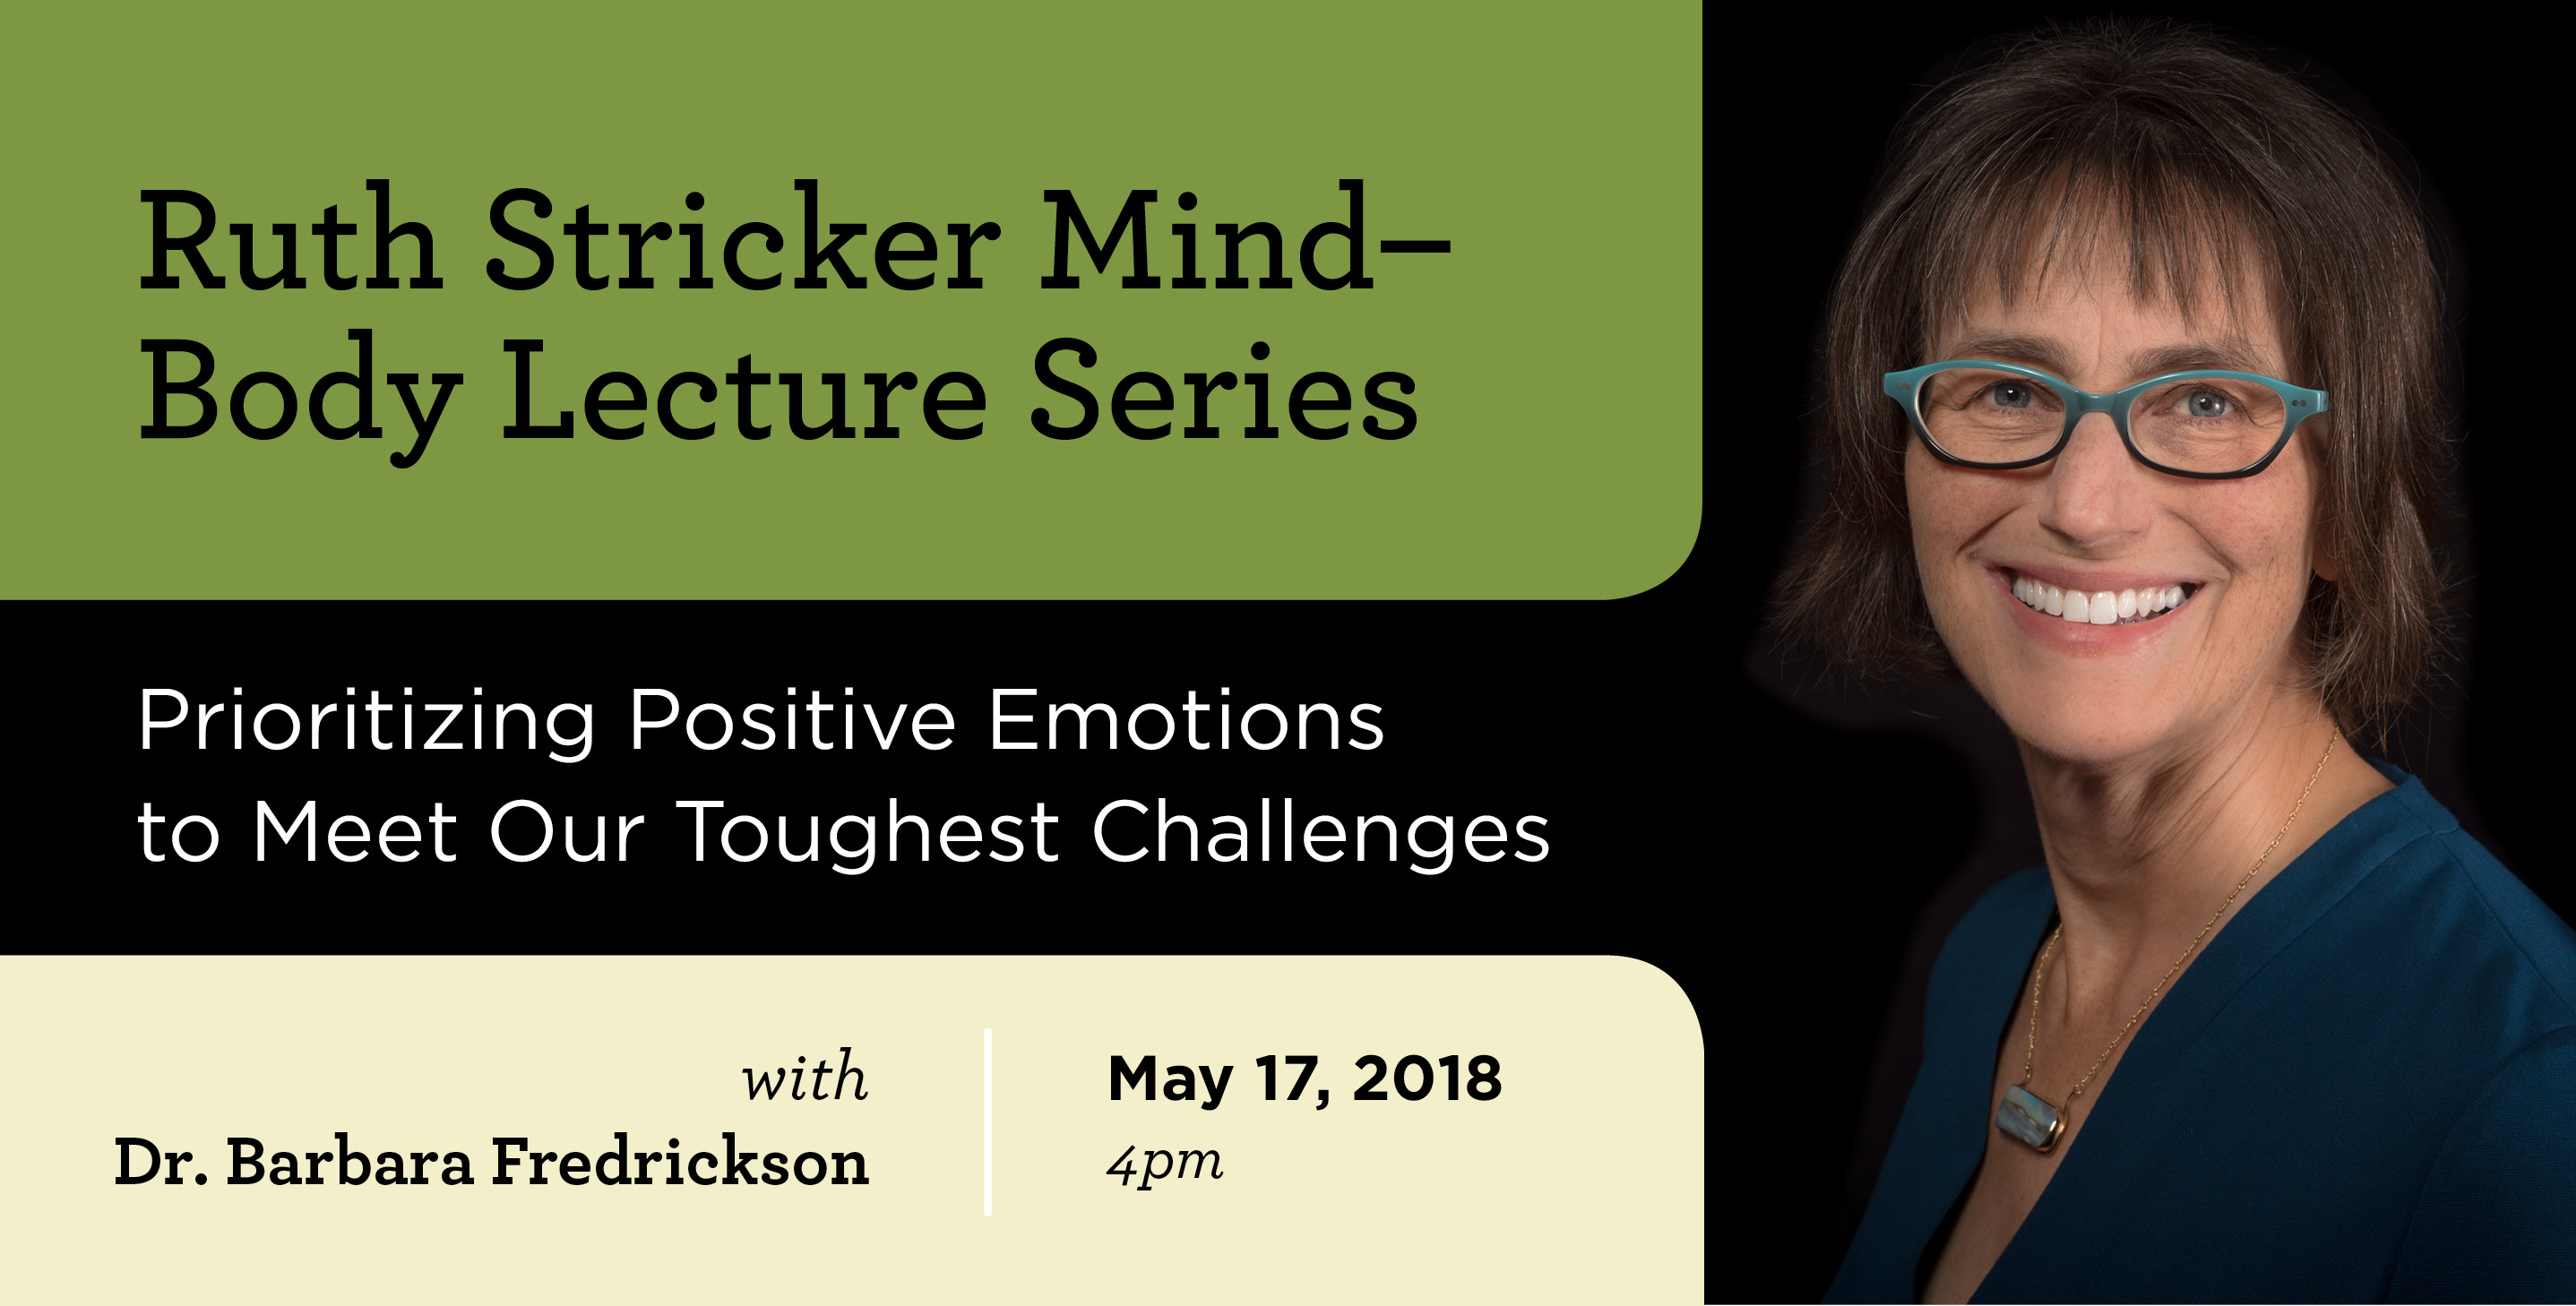 Dr. Barbara Fredrickson Ruth Stricker Mind-Body Lecture on May 17